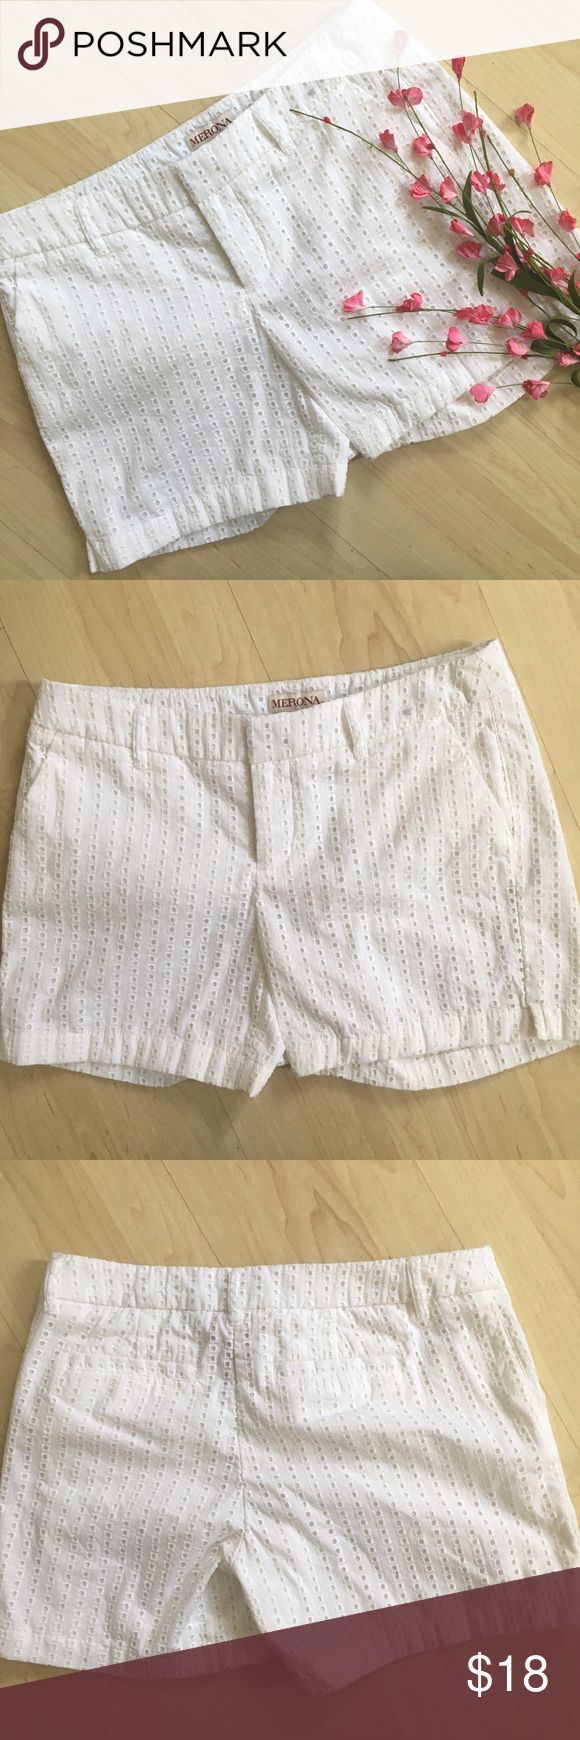 "NWOT white eyelet shorts 5"" inseam White eyelet shorts in like new condition! They have ever been worn! Merona Shorts"